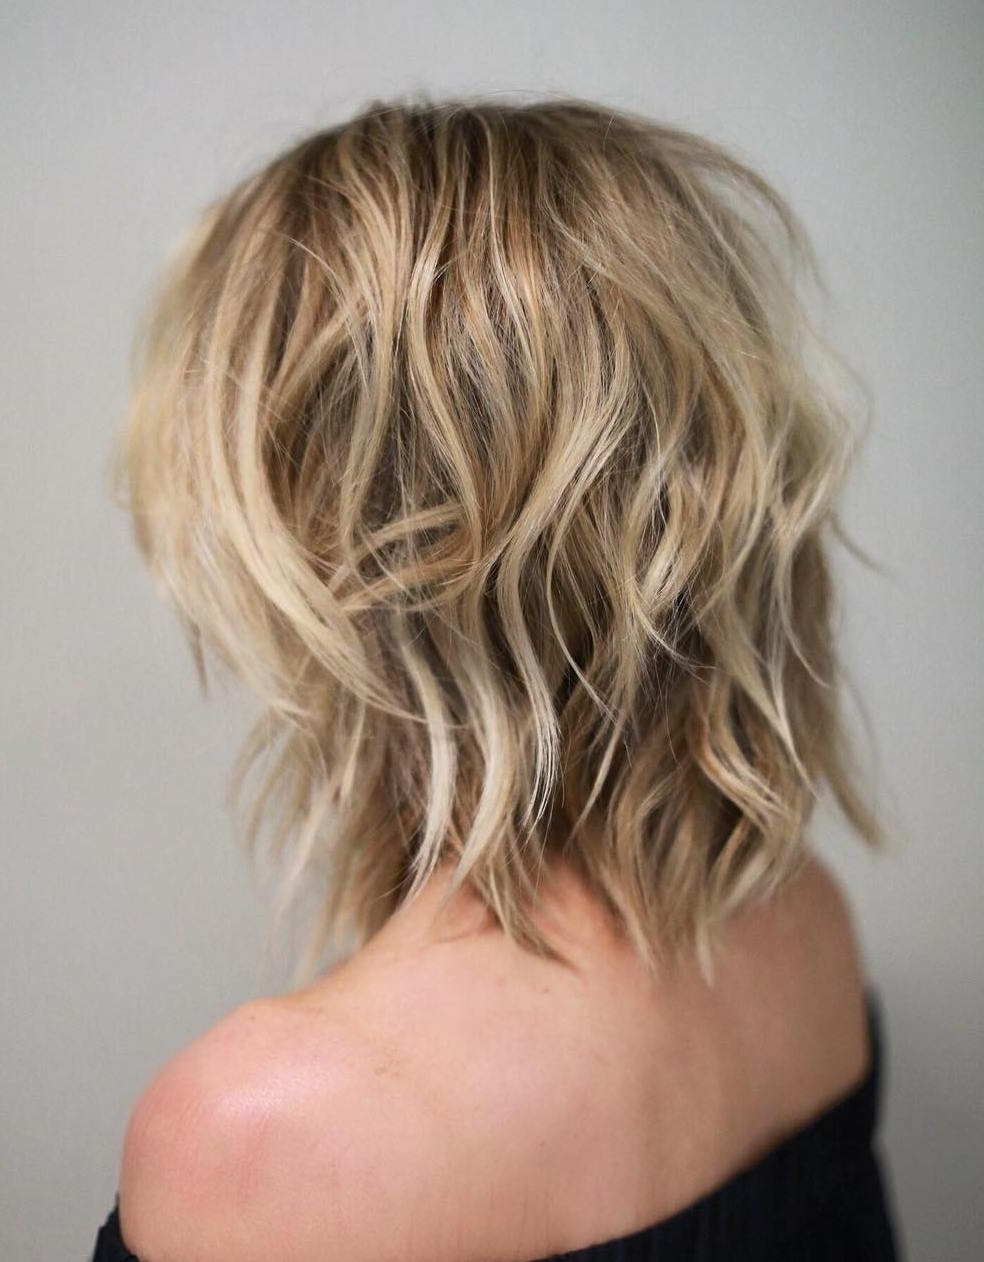 50 Best Variations Of A Medium Shag Haircut For Your Distinctive Style In Trendy Shoulder Grazing Strawberry Shag Blonde Hairstyles (View 11 of 20)